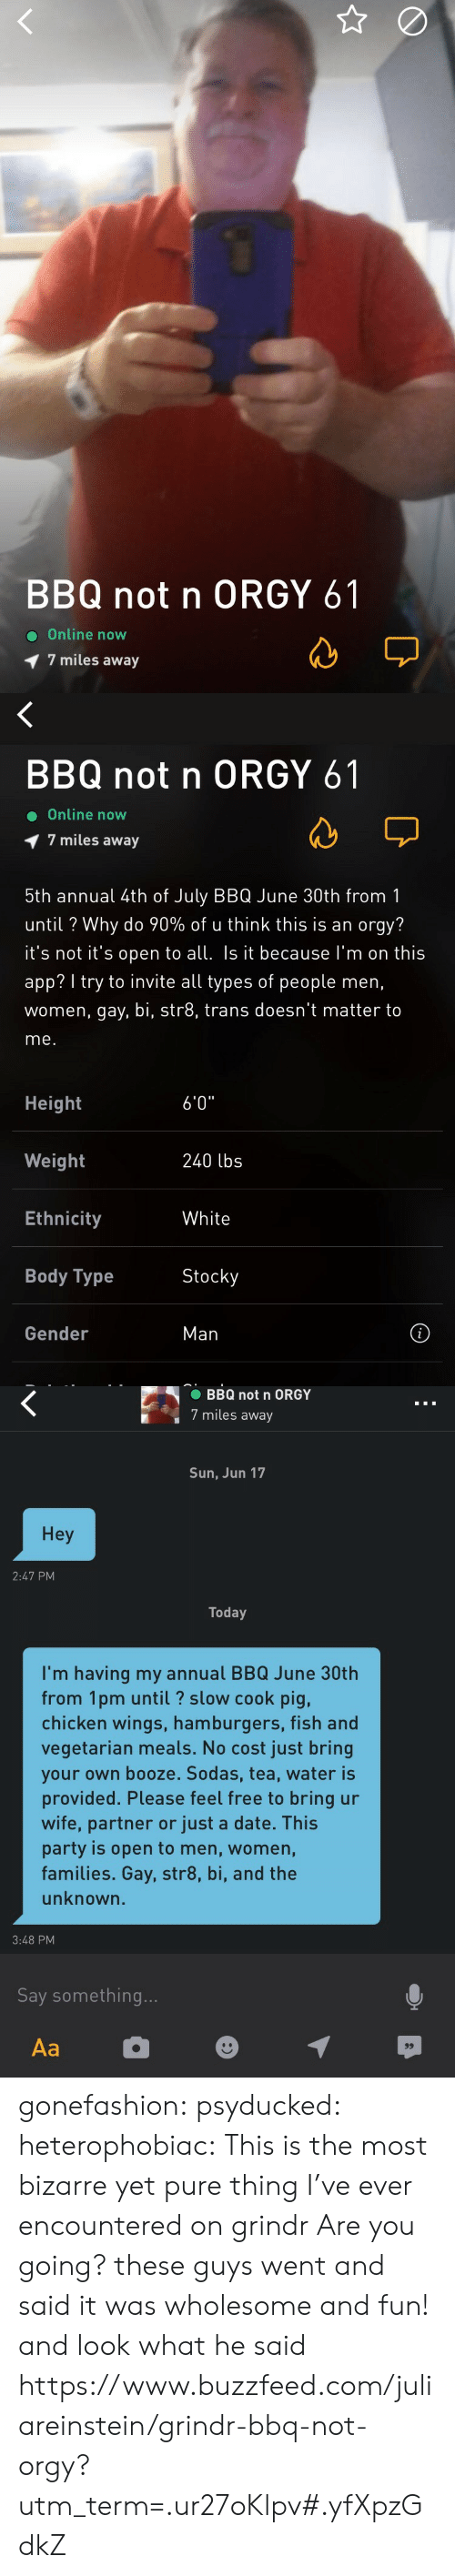 "Body Type: BBQ not n ORGY 61  Online now  7 miles away   BBQ not n ORGY 61  Online now  1 7 miles away  5th annual 4th of July BBQ June 30th from1  until ? Why do 90% of u think this is an orgy?  t's not t's open to all Is it because I'm on this  app? I try to invite all types of people men,  women, gay, bi, str8, trans doesn't matter to  me.  Height  Weight  Ethnicity  Body Type  6'0""  240 lbs  White  Stocky  Gender  Man   BBQ not n ORGY  7 miles away  Sun, Jun 17  Hey  2:47 PM  Today  I'm having my annual BBQ June 30th  from 1pm until? slow cook pig,  chicken wings, hamburgers, fish and  vegetarian meals. No cost just bring  your own booze. Sodas, tea, water is  provided. Please feel free to bring ur  wife, partner or just a date. This  party is open to men, women,  families. Gay, str8, bi, and the  unknown.  3:48 PM  Say something gonefashion:  psyducked:  heterophobiac: This is the most bizarre yet pure thing I've ever encountered on grindr  Are you going?  these guys went and said it was wholesome and fun! and look what he said https://www.buzzfeed.com/juliareinstein/grindr-bbq-not-orgy?utm_term=.ur27oKlpv#.yfXpzGdkZ"